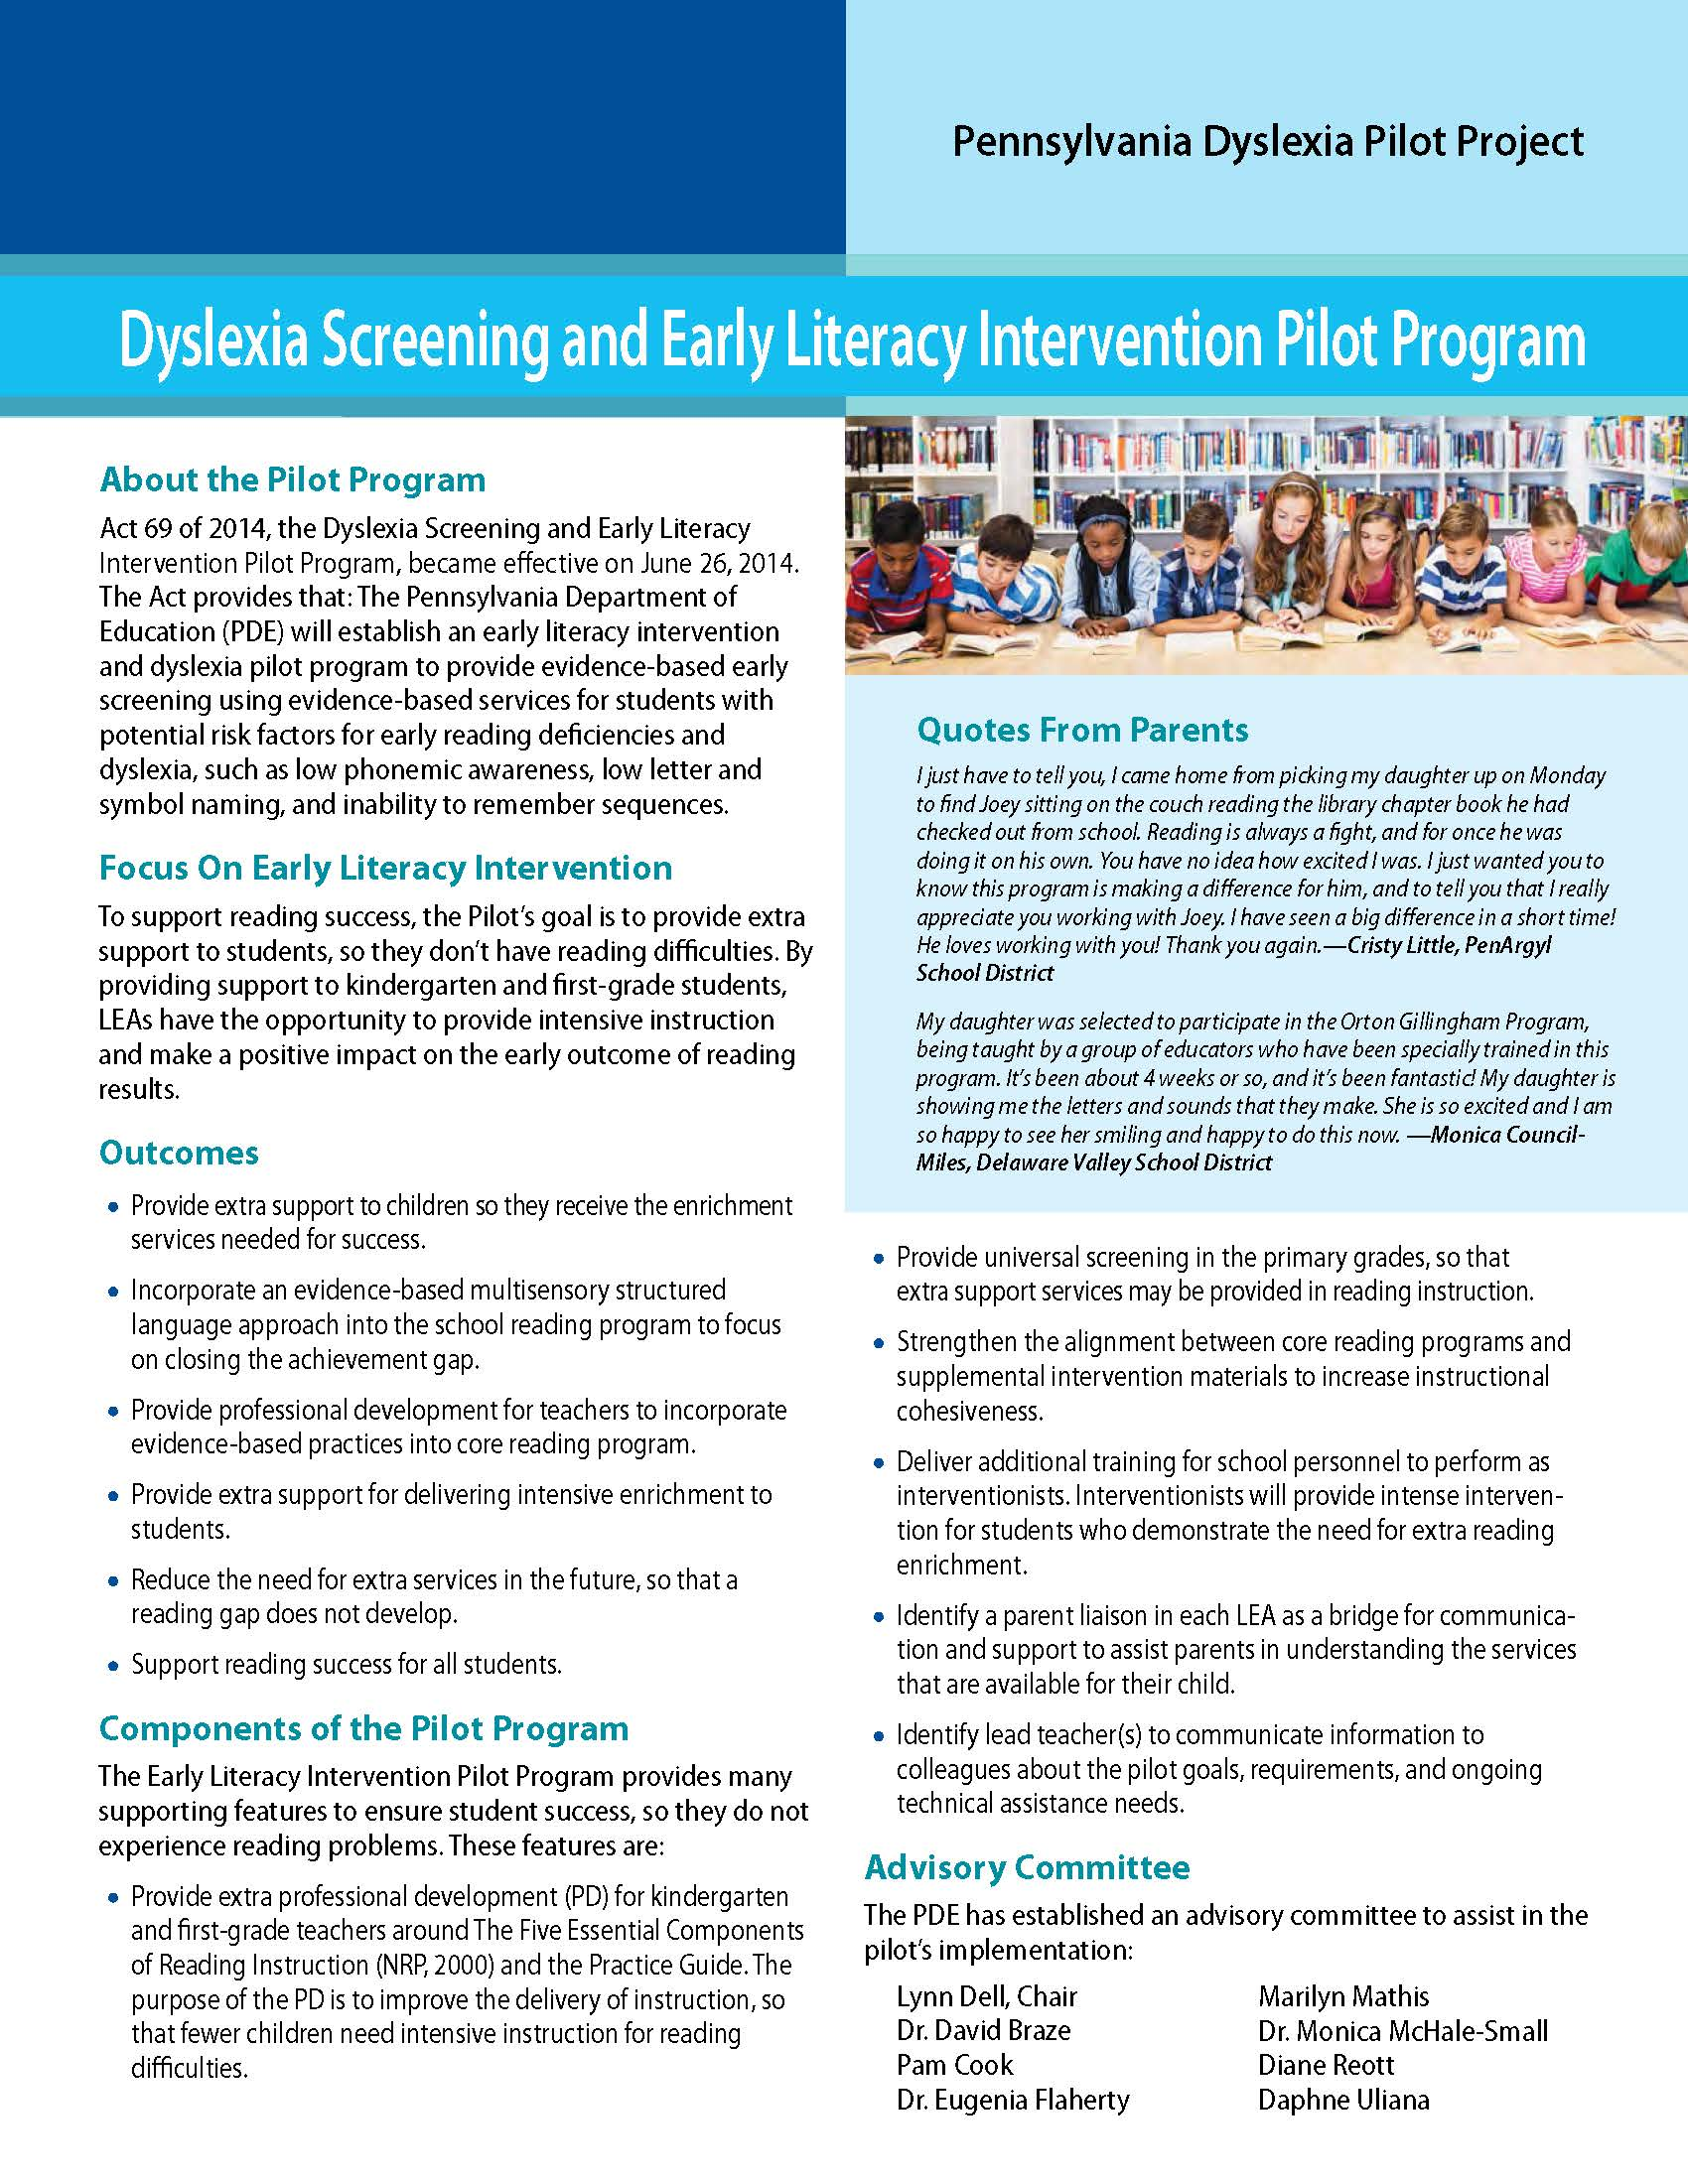 Dyslexia Screening and Early Literacy Intervention Pilot Program